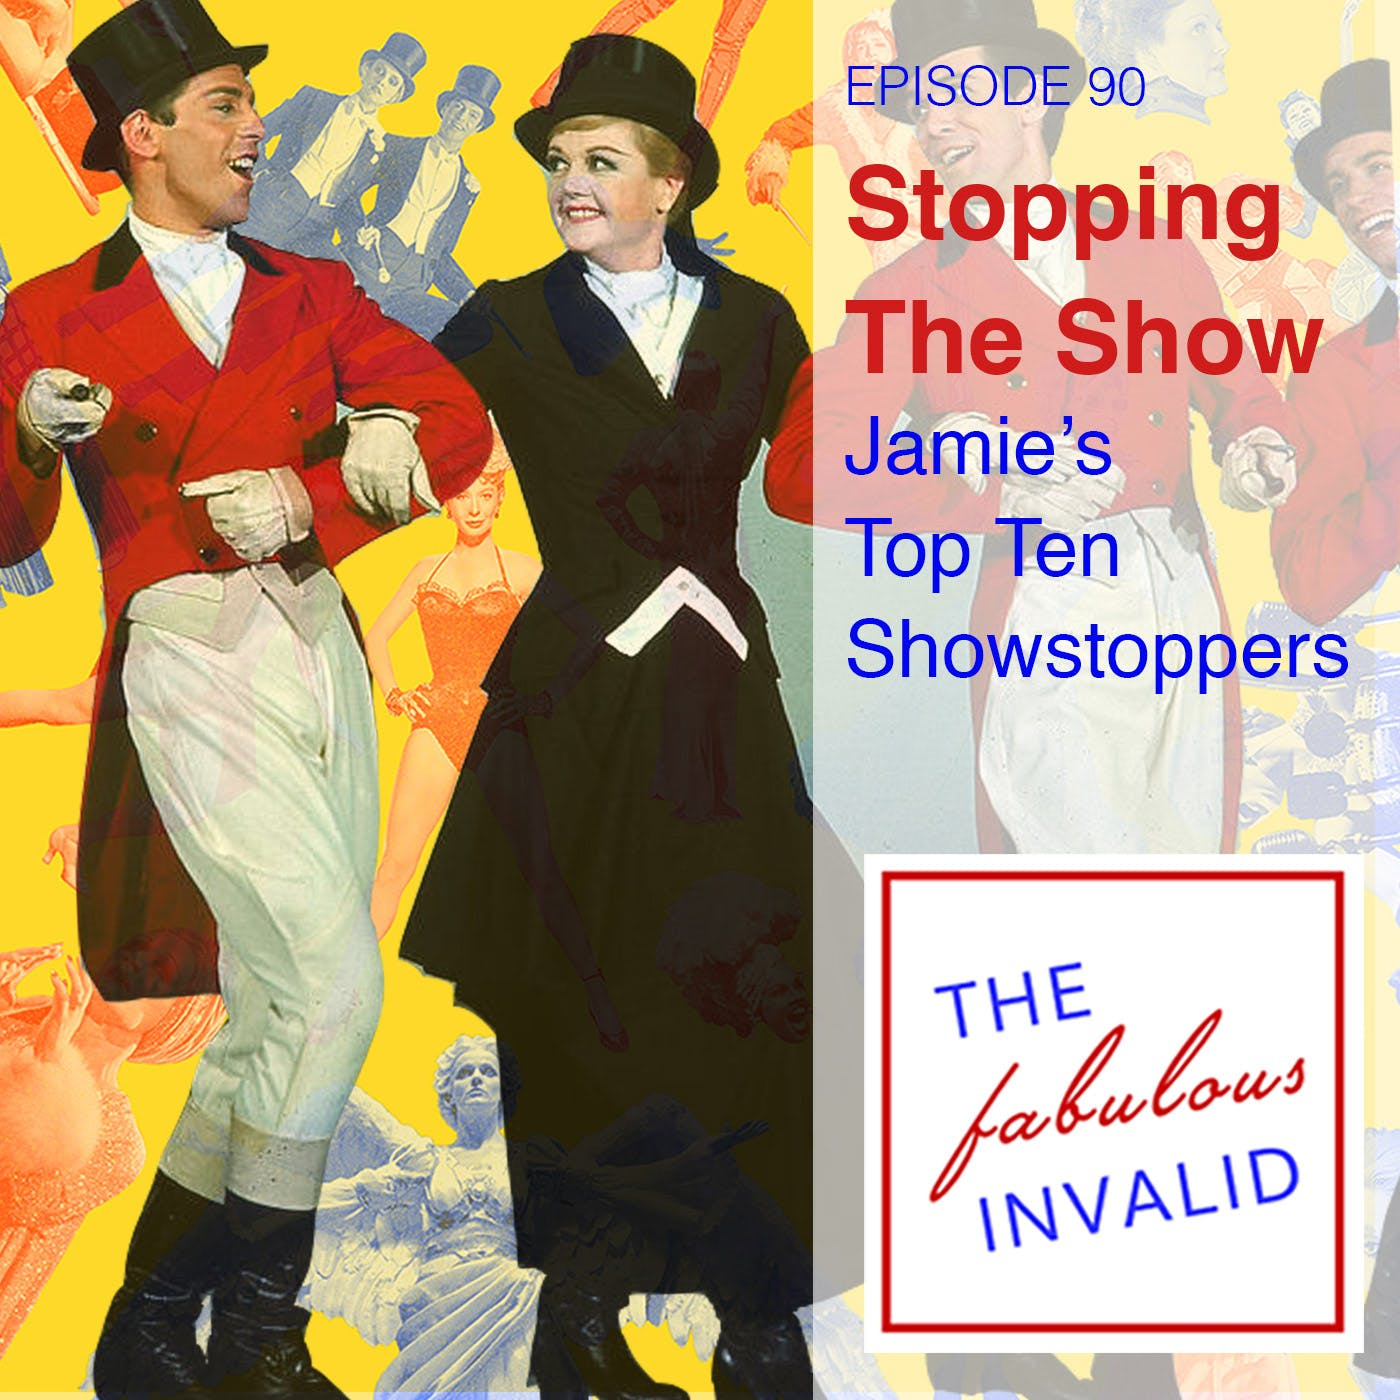 Episode 90: Stopping the Show: Jamie's Top Ten Showstoppers